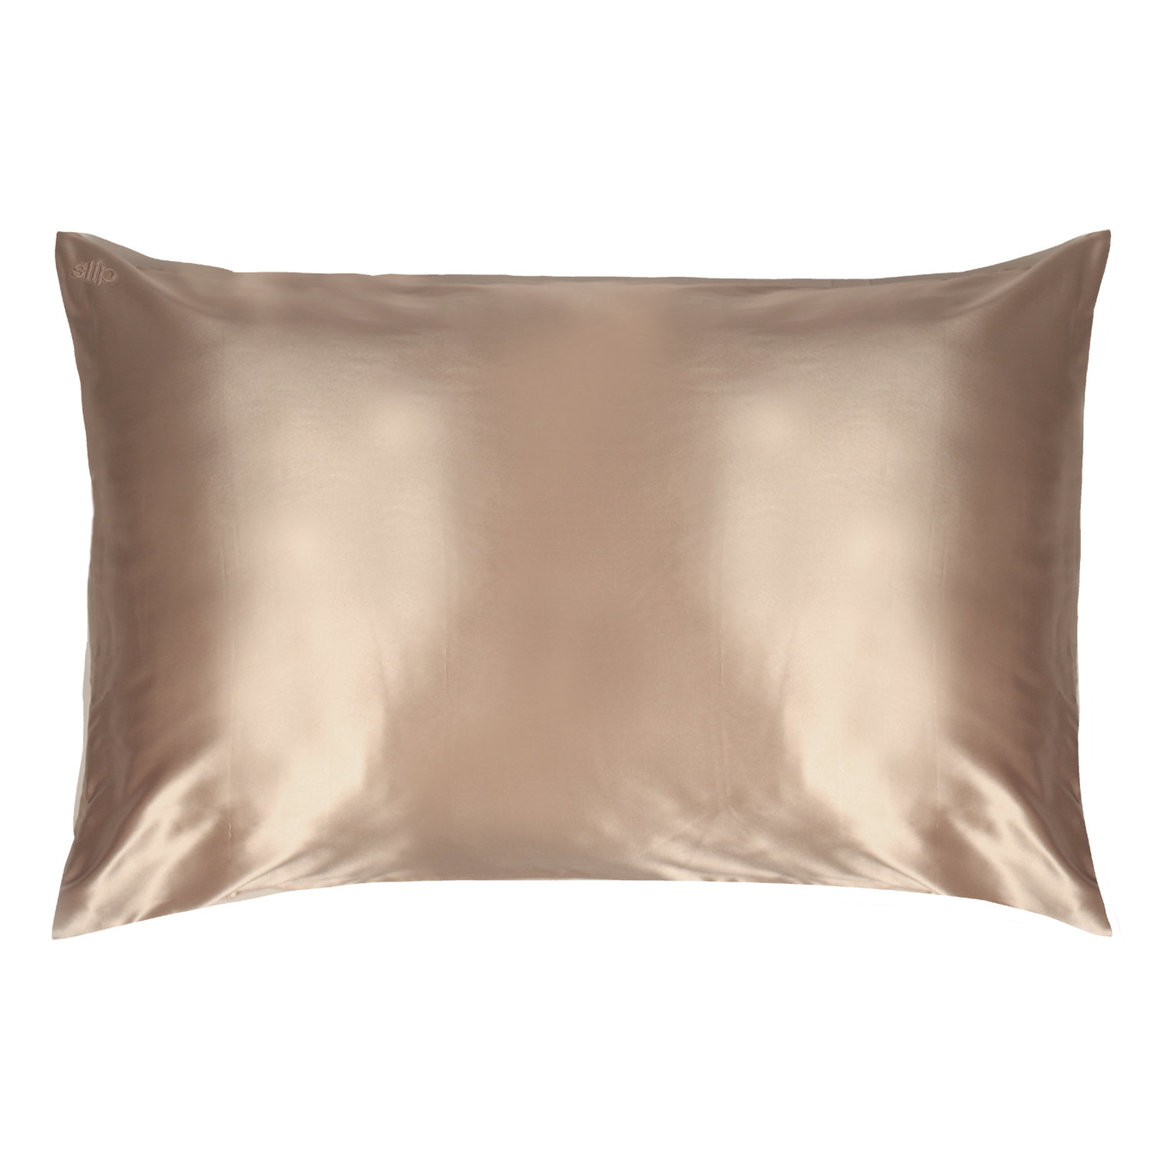 Slip Queen/Standard Silk Pillowcase Caramel product smear.